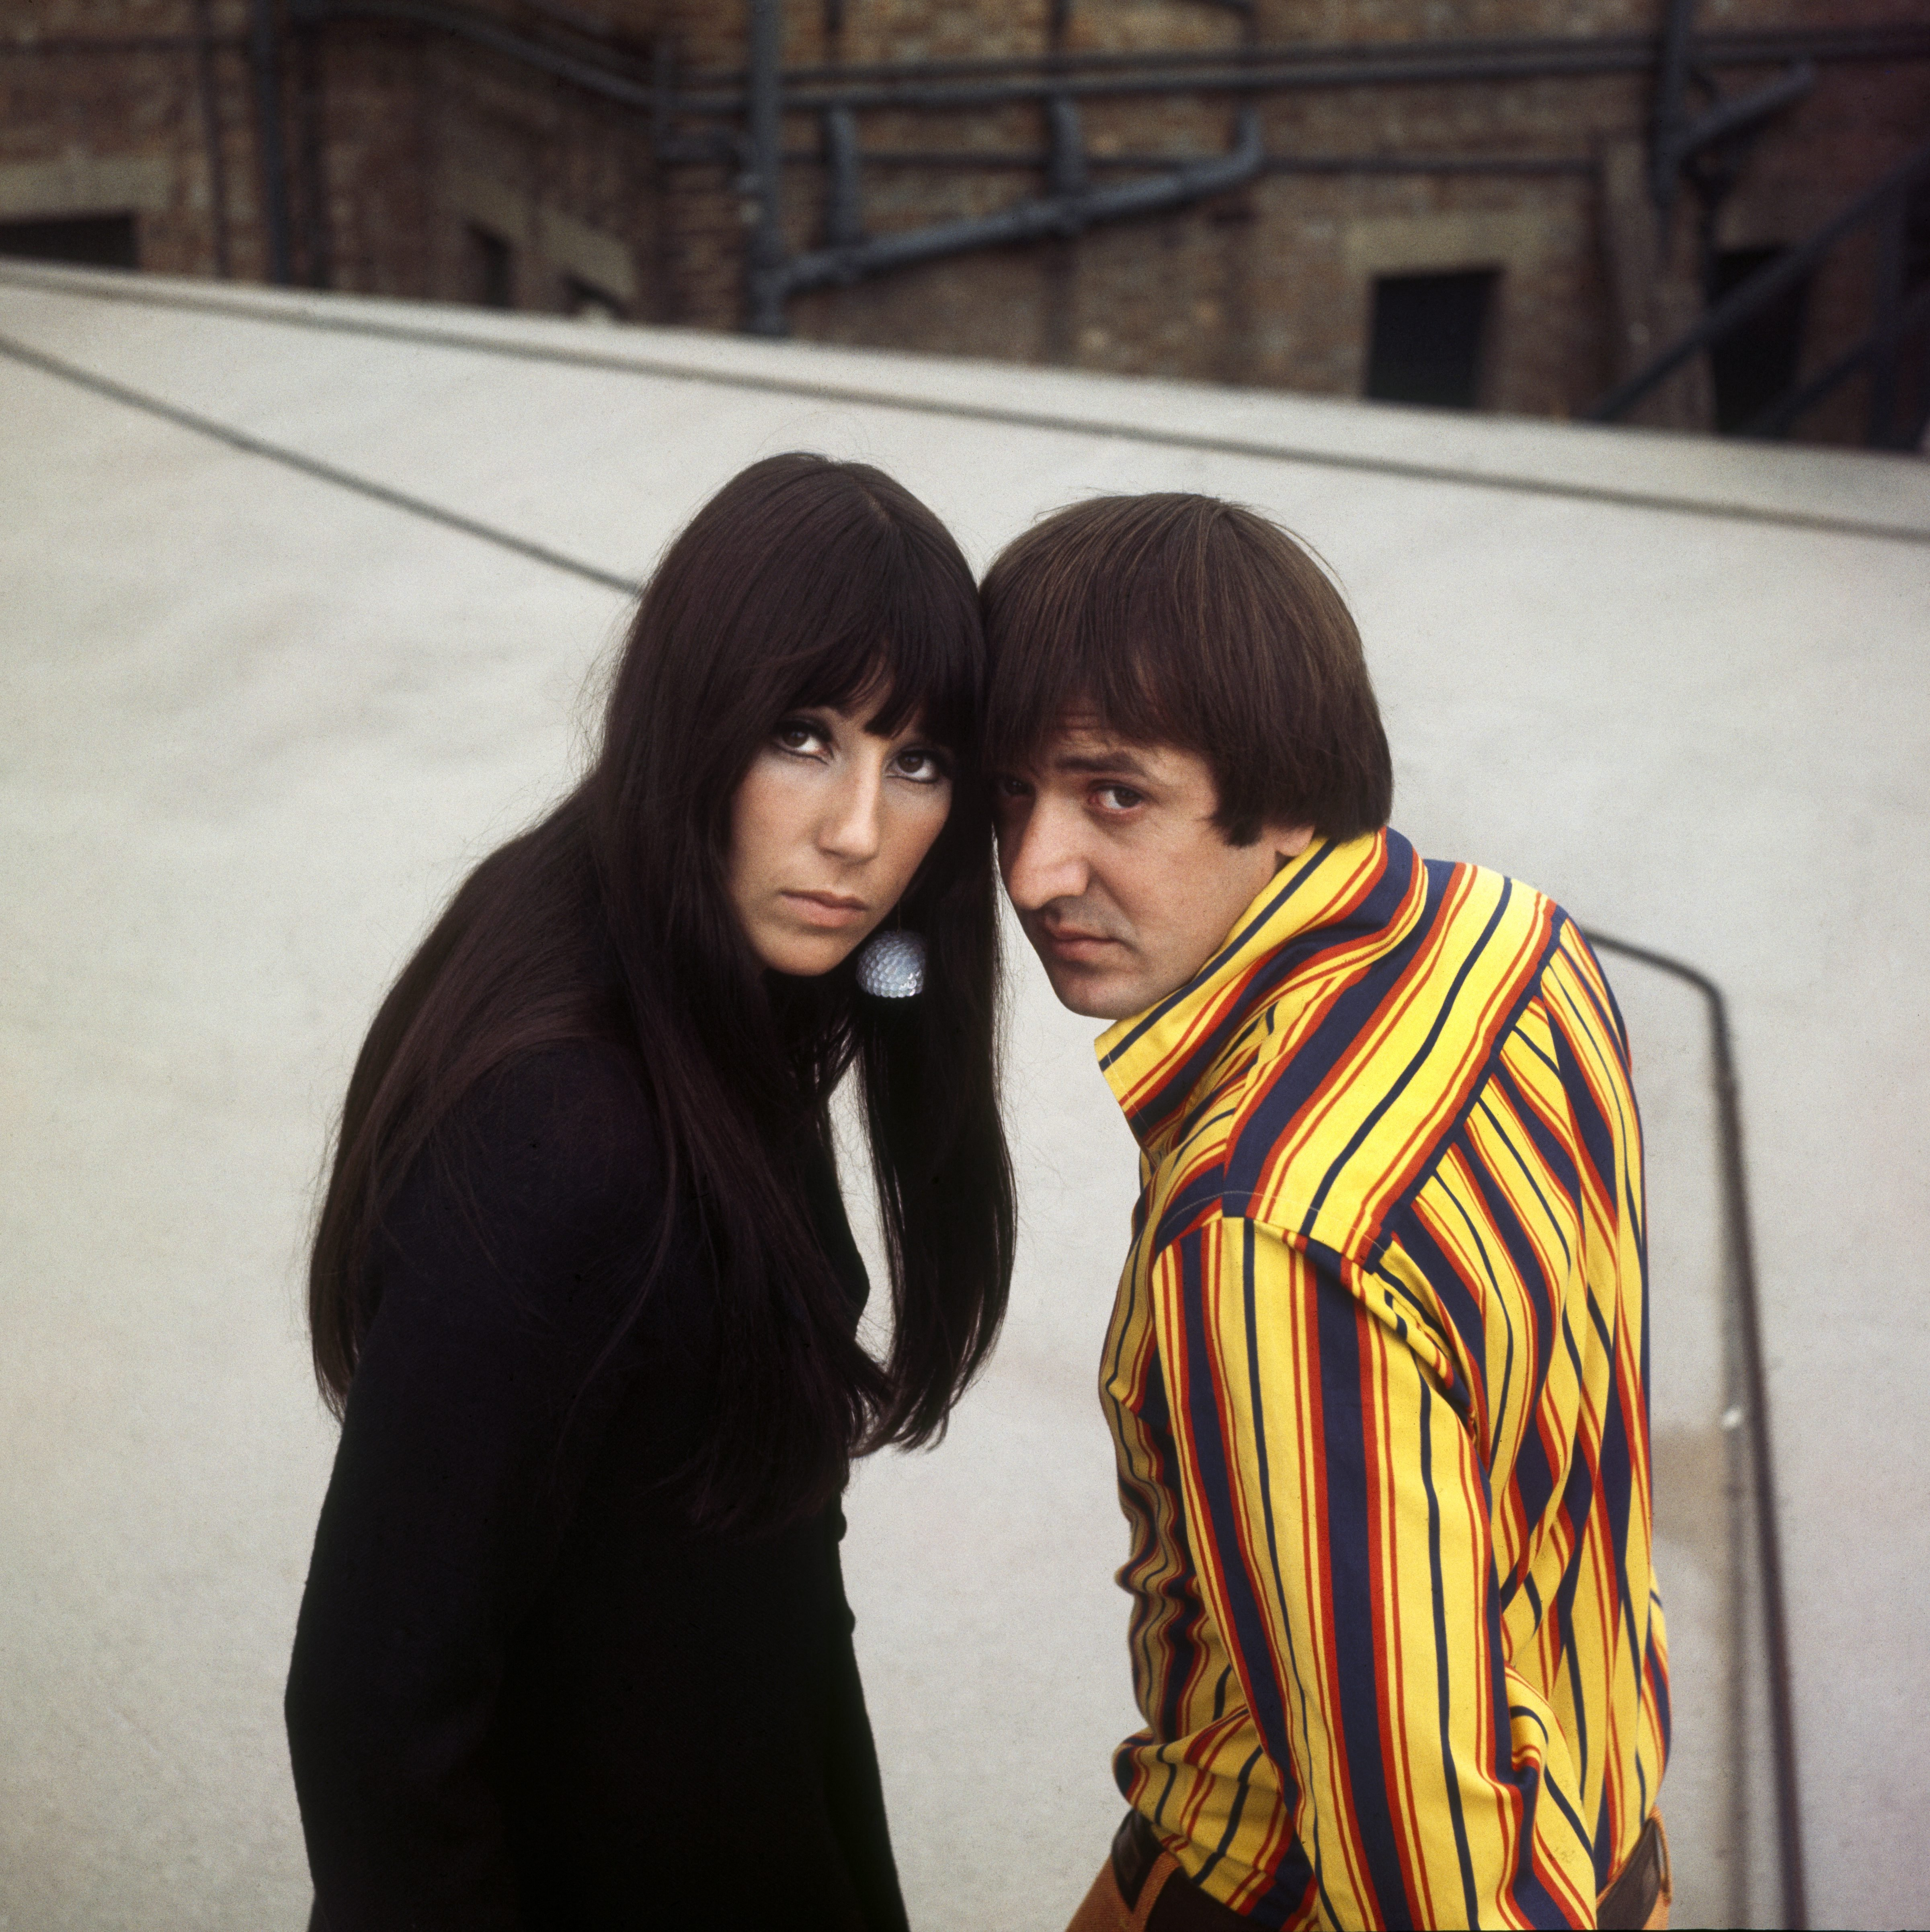 Image Source: Getty Images/Cher and Bono in a photoshoot